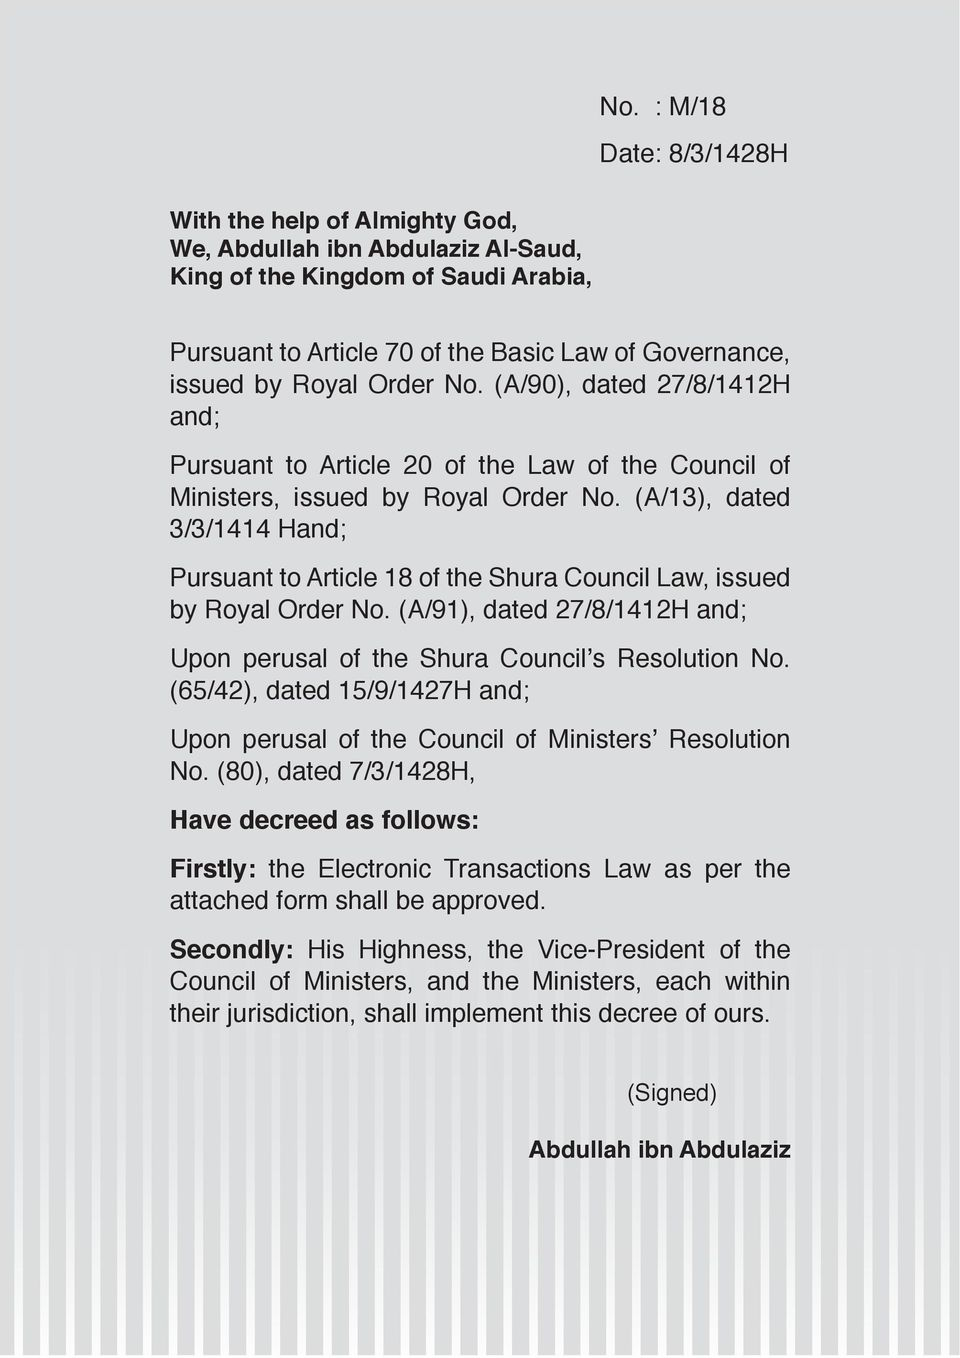 (A/90), dated 27/8/1412H and; Pursuant to Article 20 of the Law of the Council of Ministers, issued by Royal Order No.